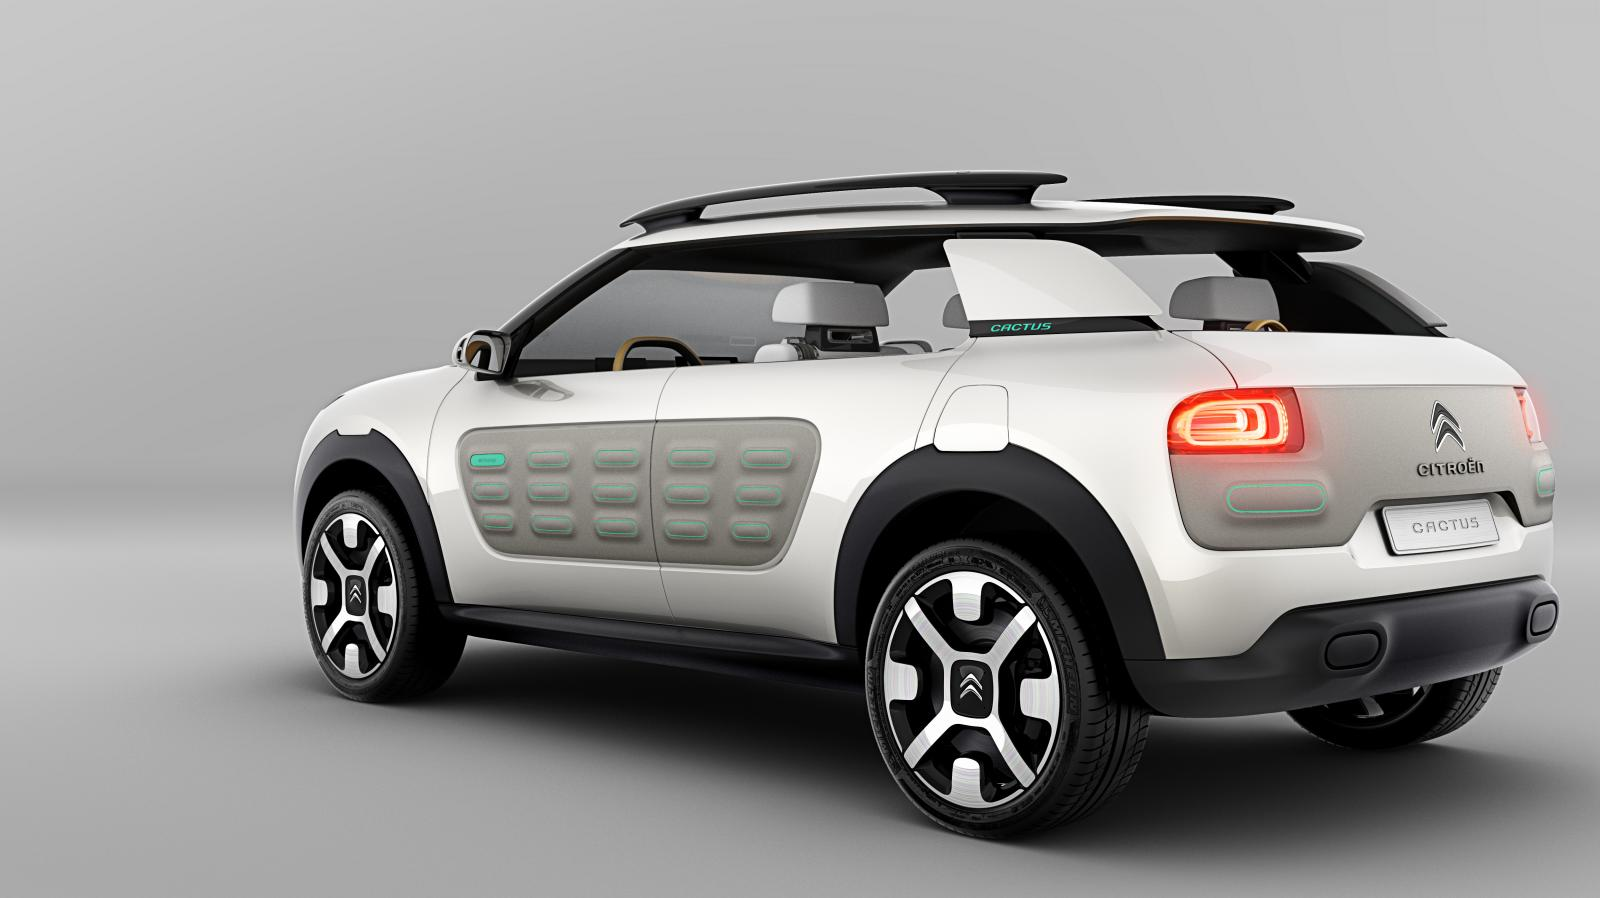 Concept-Car Cactus 2013 rear 3/4